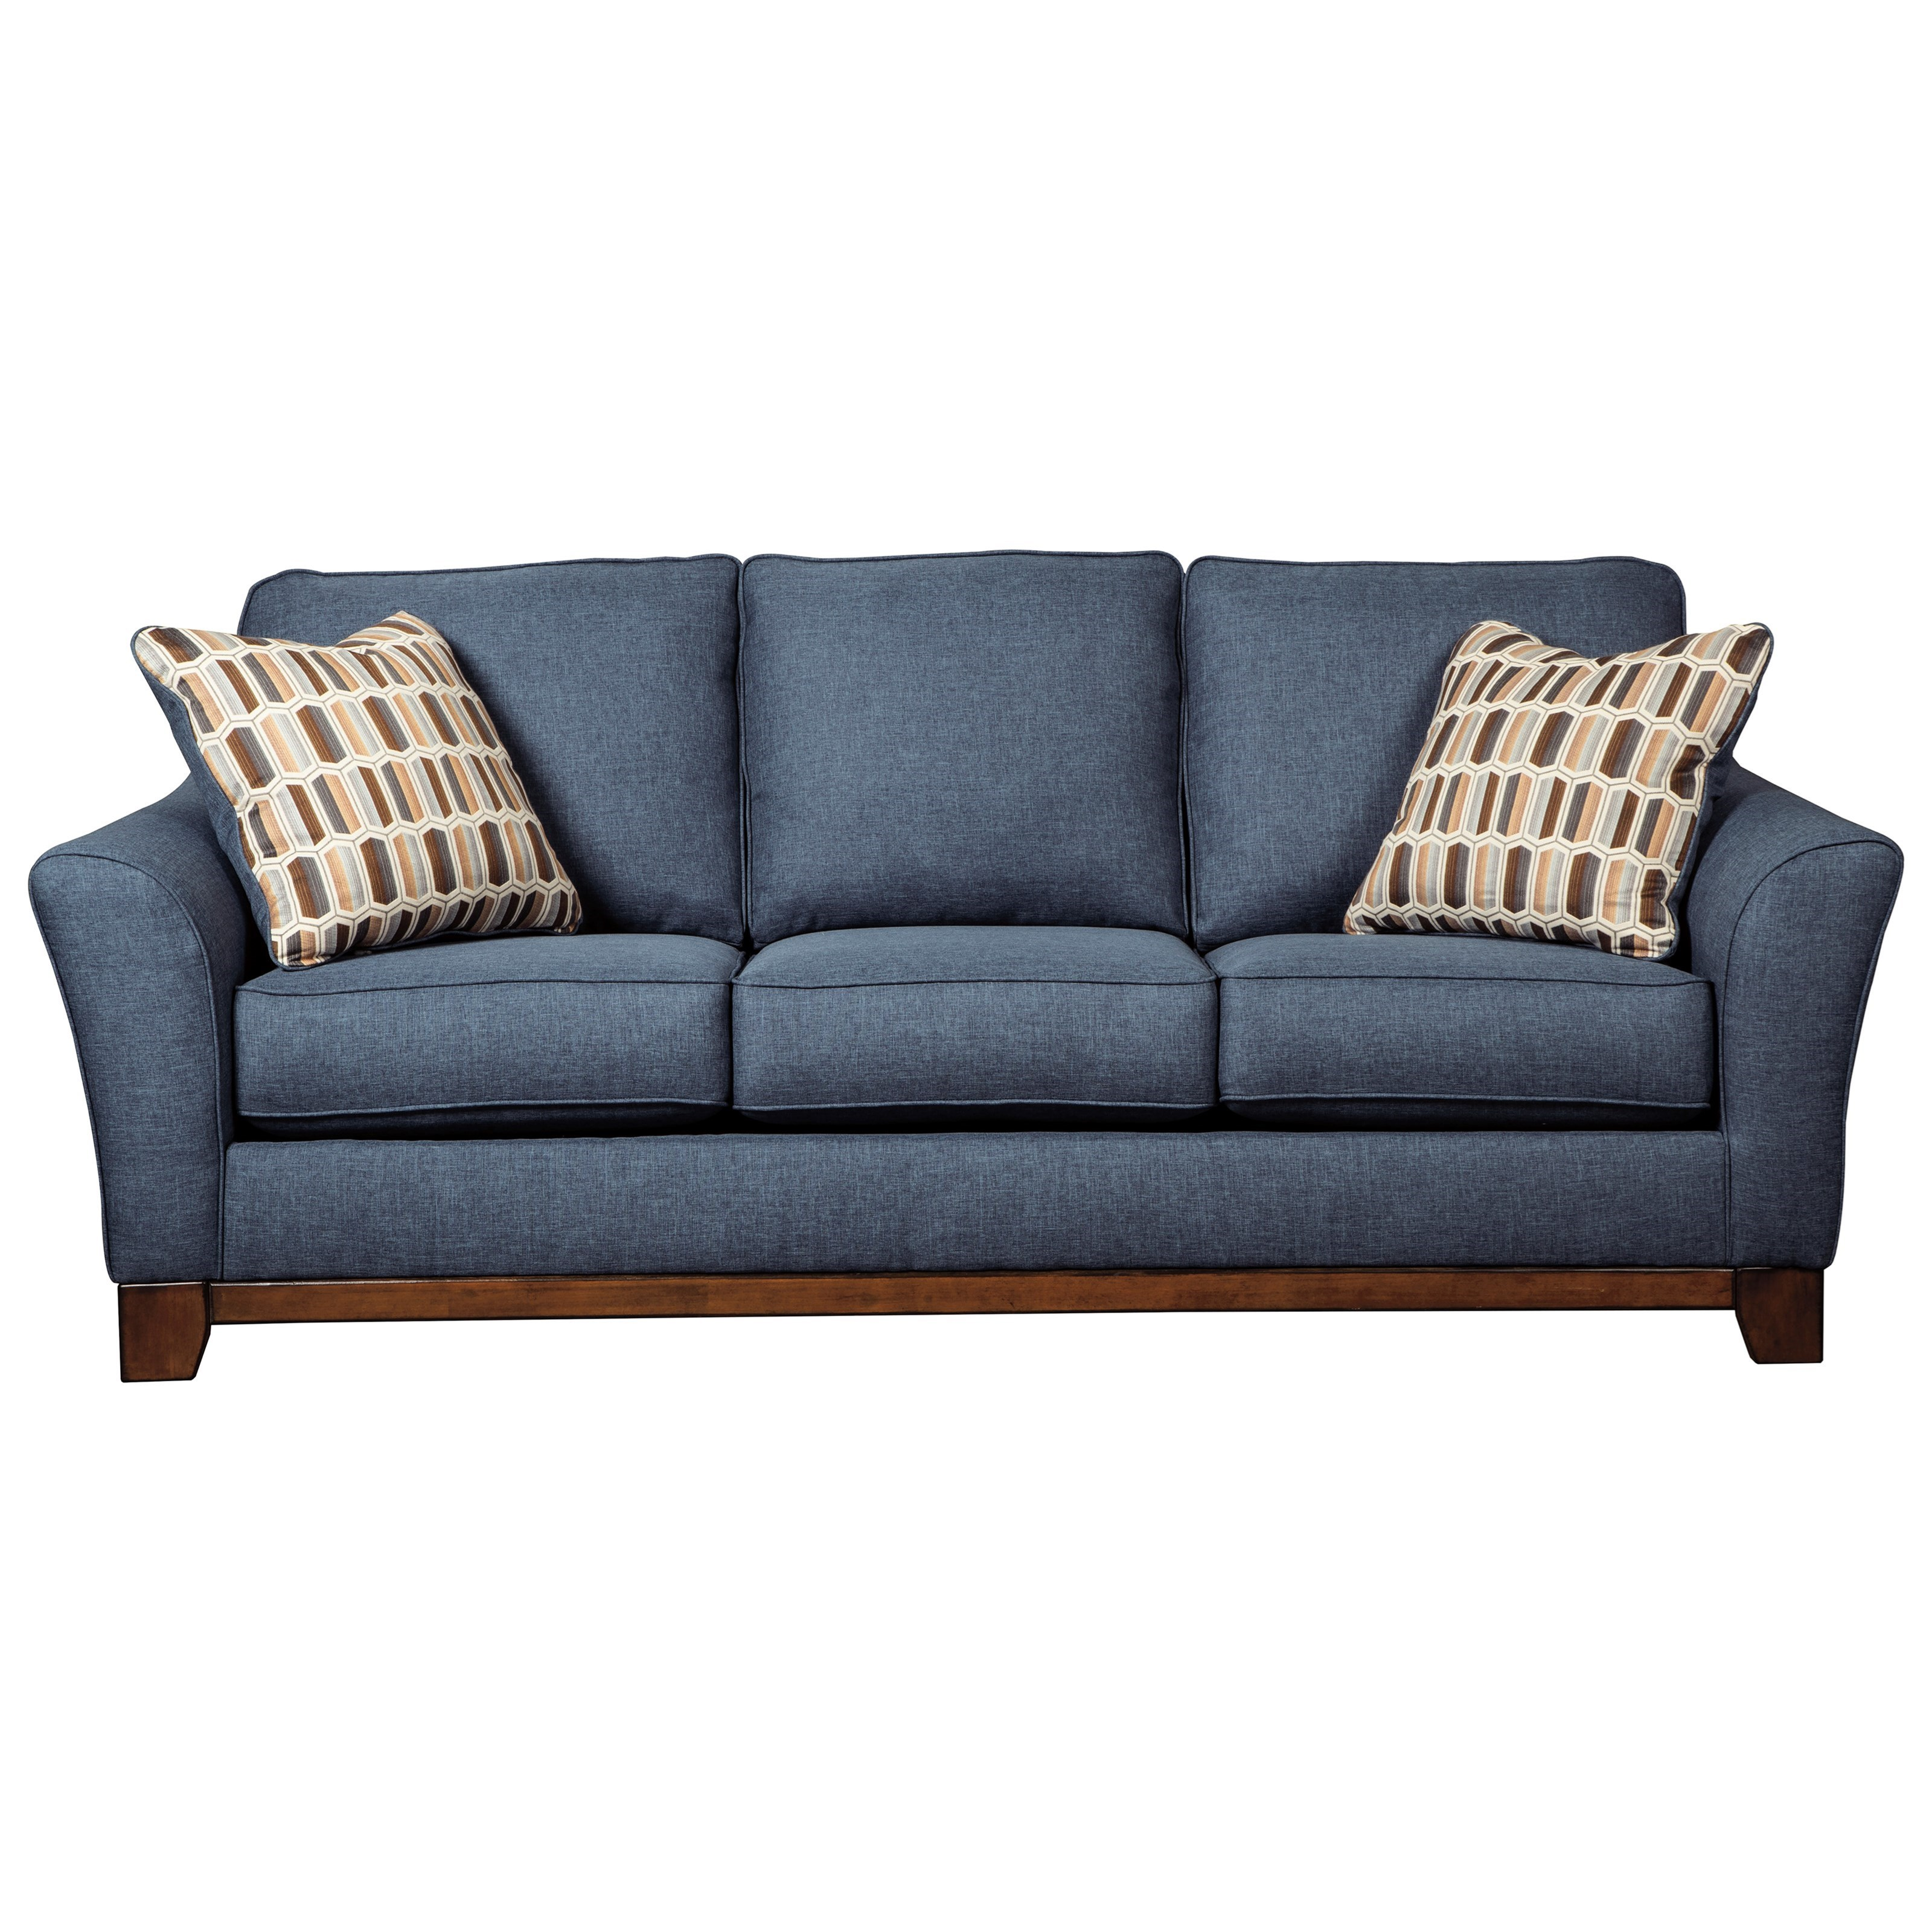 Benchcraft janley 4380738 contemporary sofa with front for Modern front room furniture